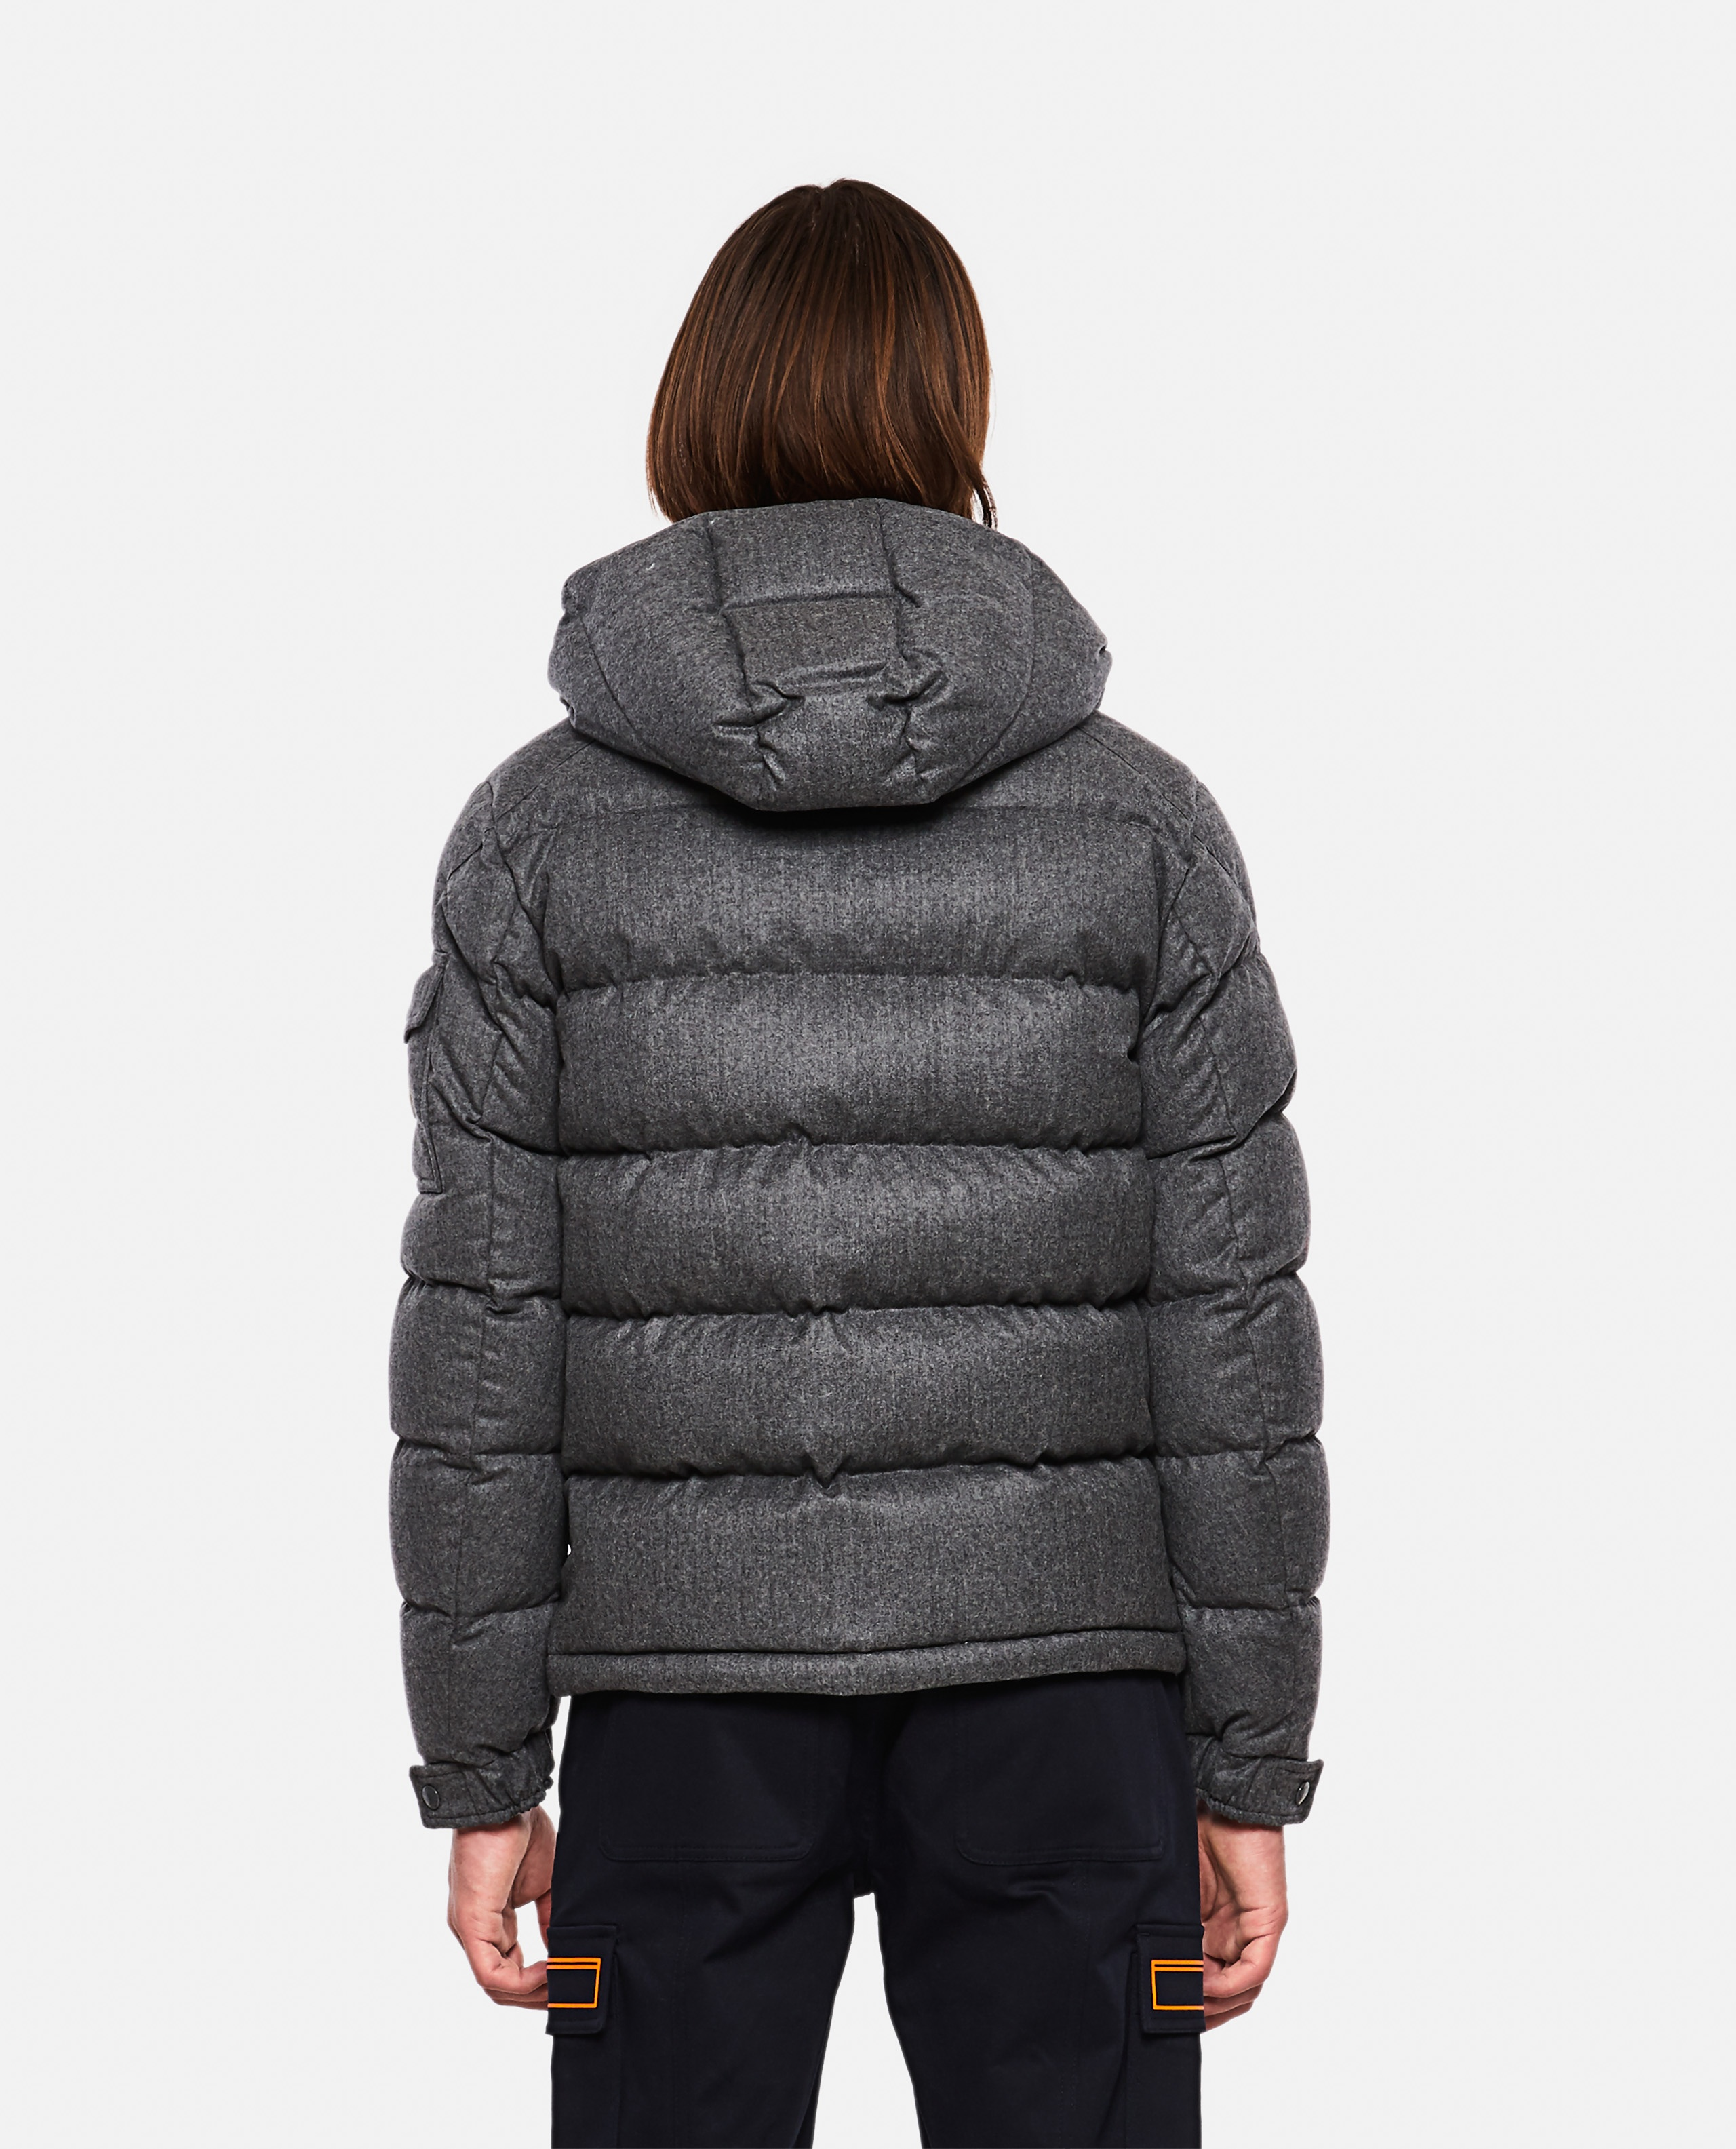 Down jacket with application Men Moncler 000271310039971 3